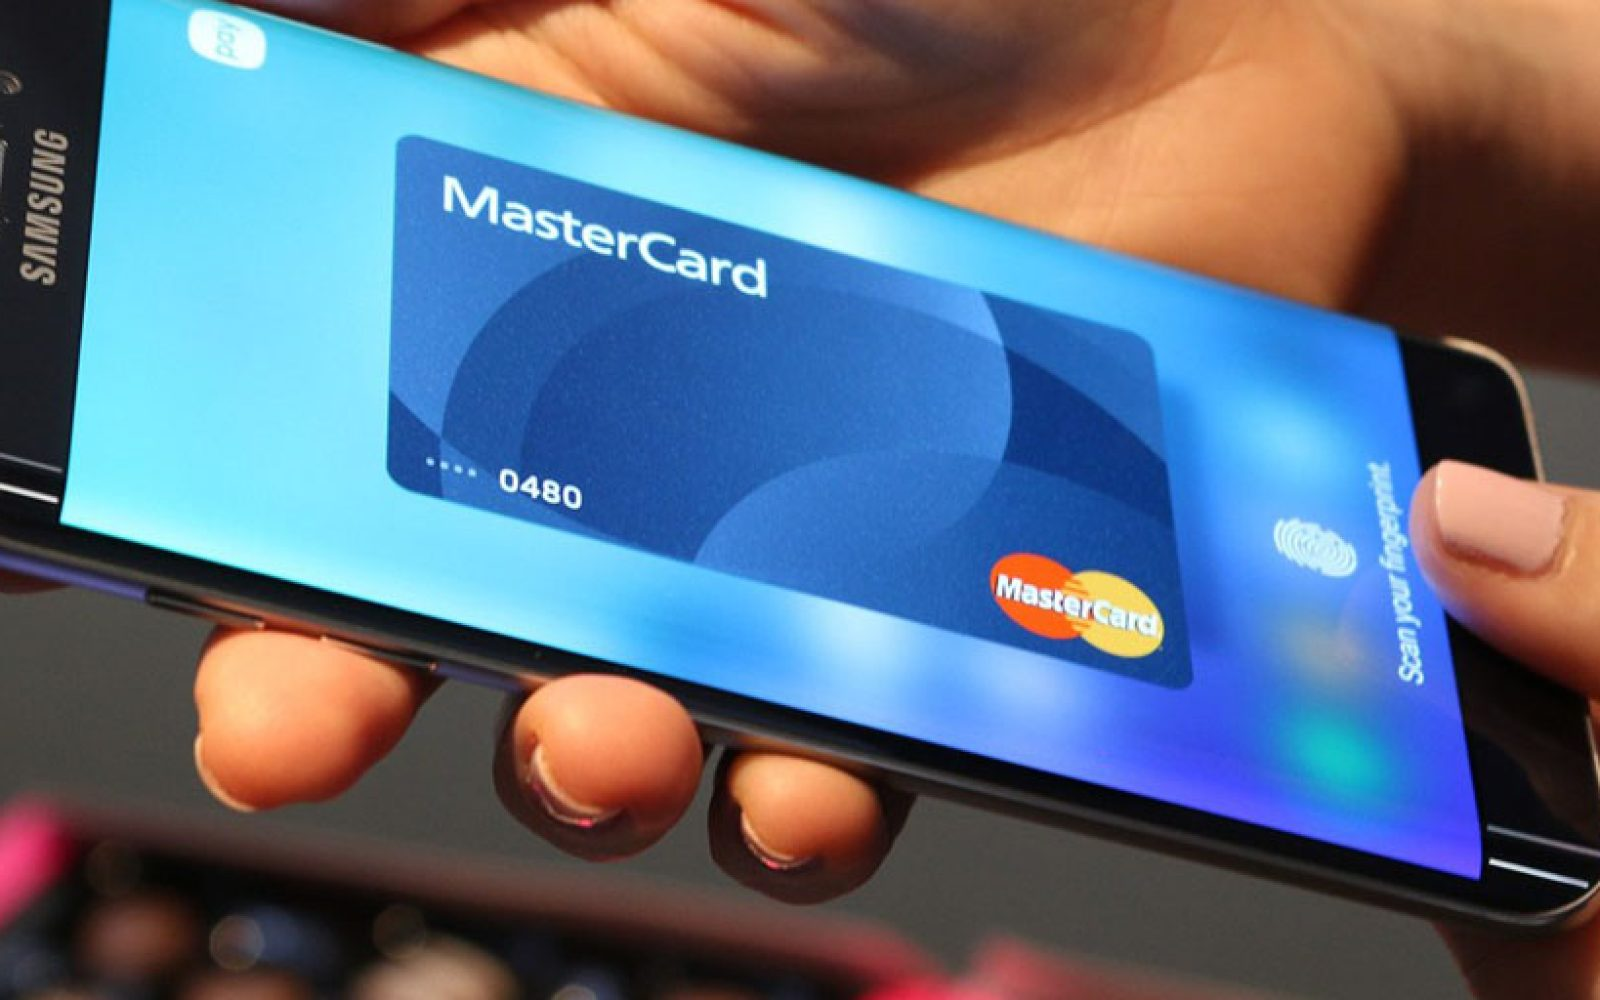 Samsung Pay now works with 19 new cards, including PNC Visa